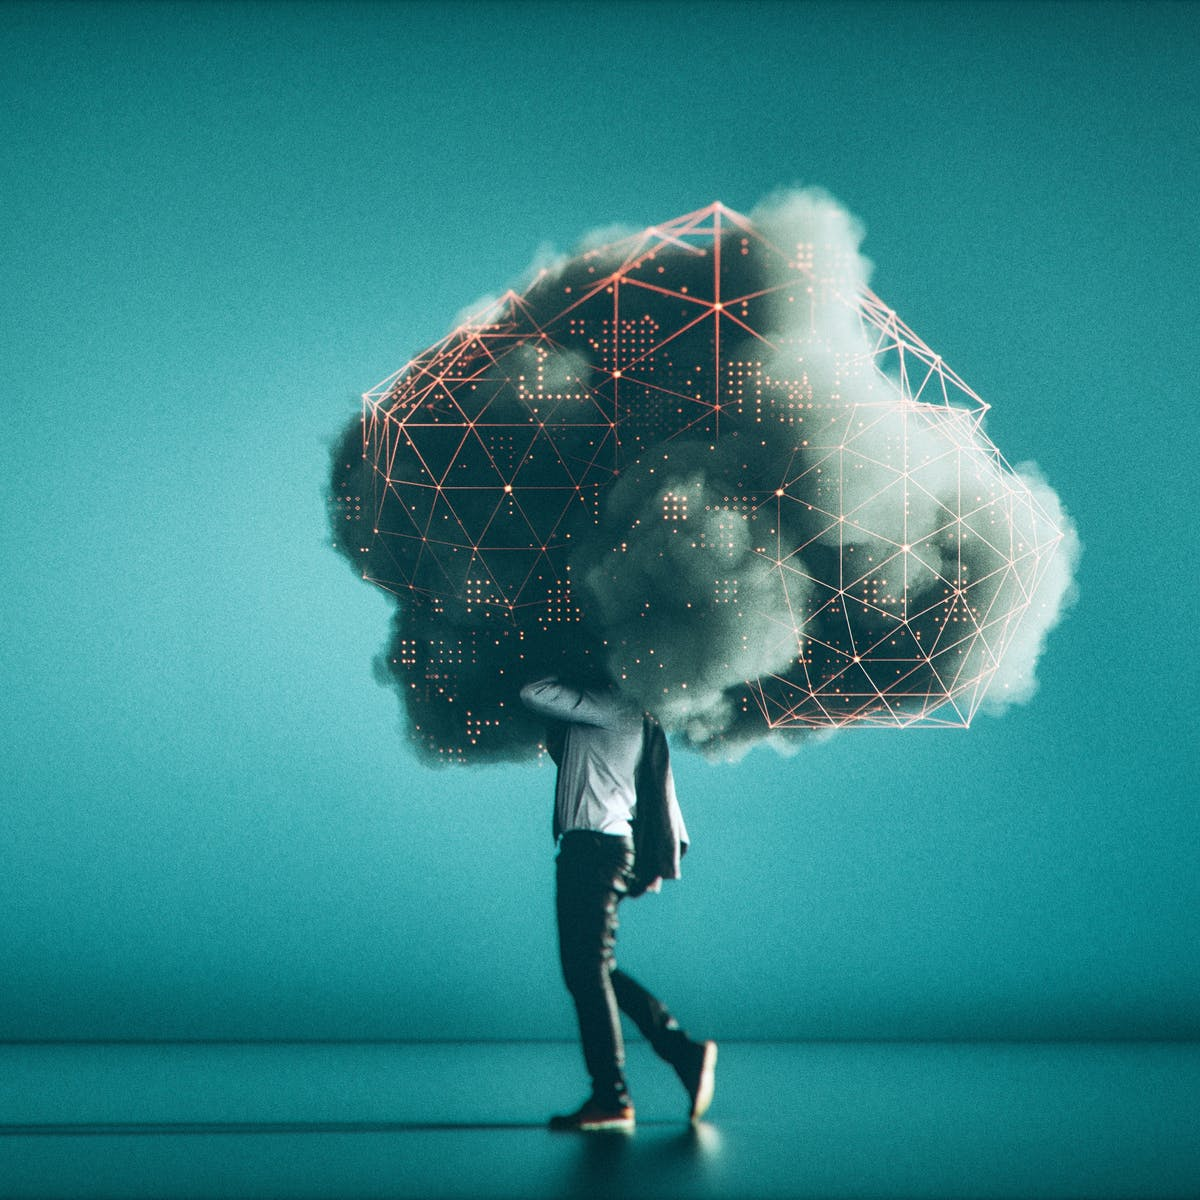 Titelbild-Mann-läuft-in-Wolke-cloud-iStock-940308660